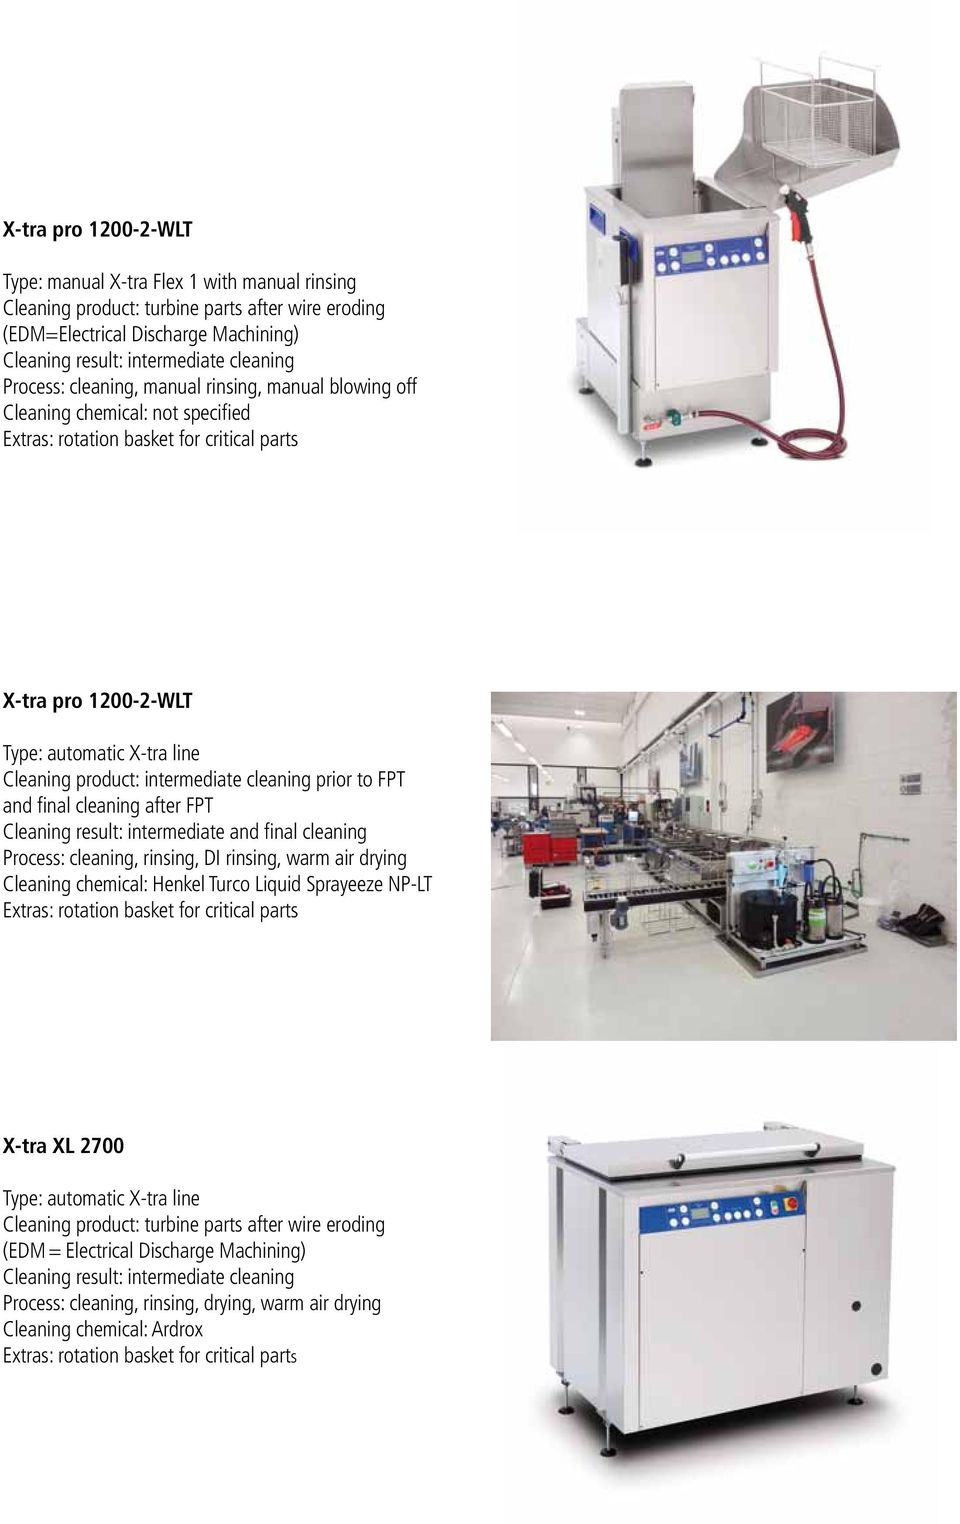 cleaning after FPT Cleaning result: intermediate and final cleaning Process: cleaning, rinsing, DI rinsing, warm air drying Cleaning chemical: Henkel Turco Liquid Sprayeeze NP-LT X-tra XL 2700 Type: